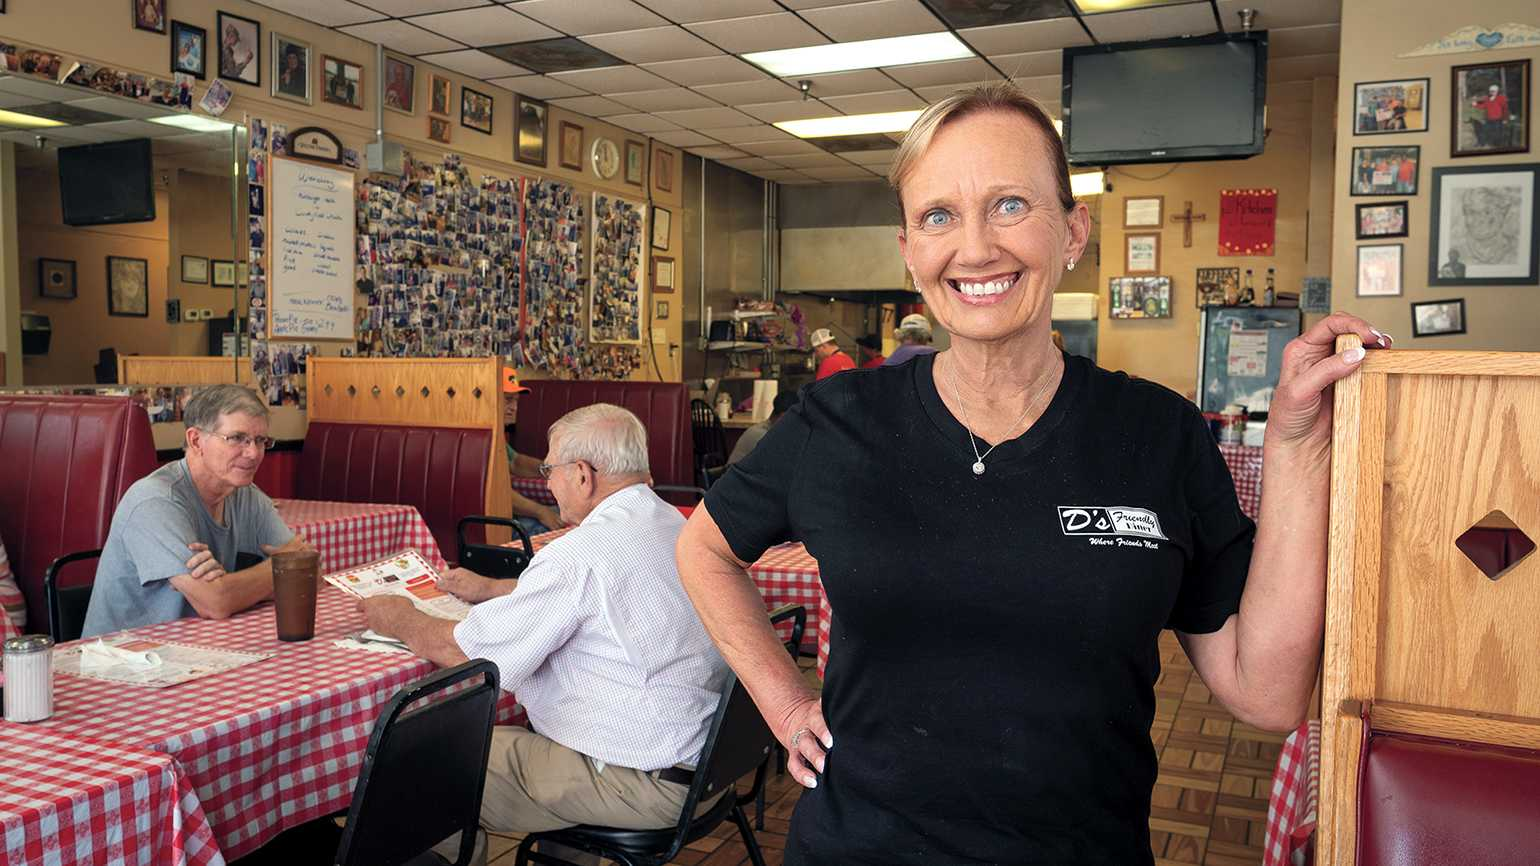 Dana Smith, proprietor of D's Friendly Diner